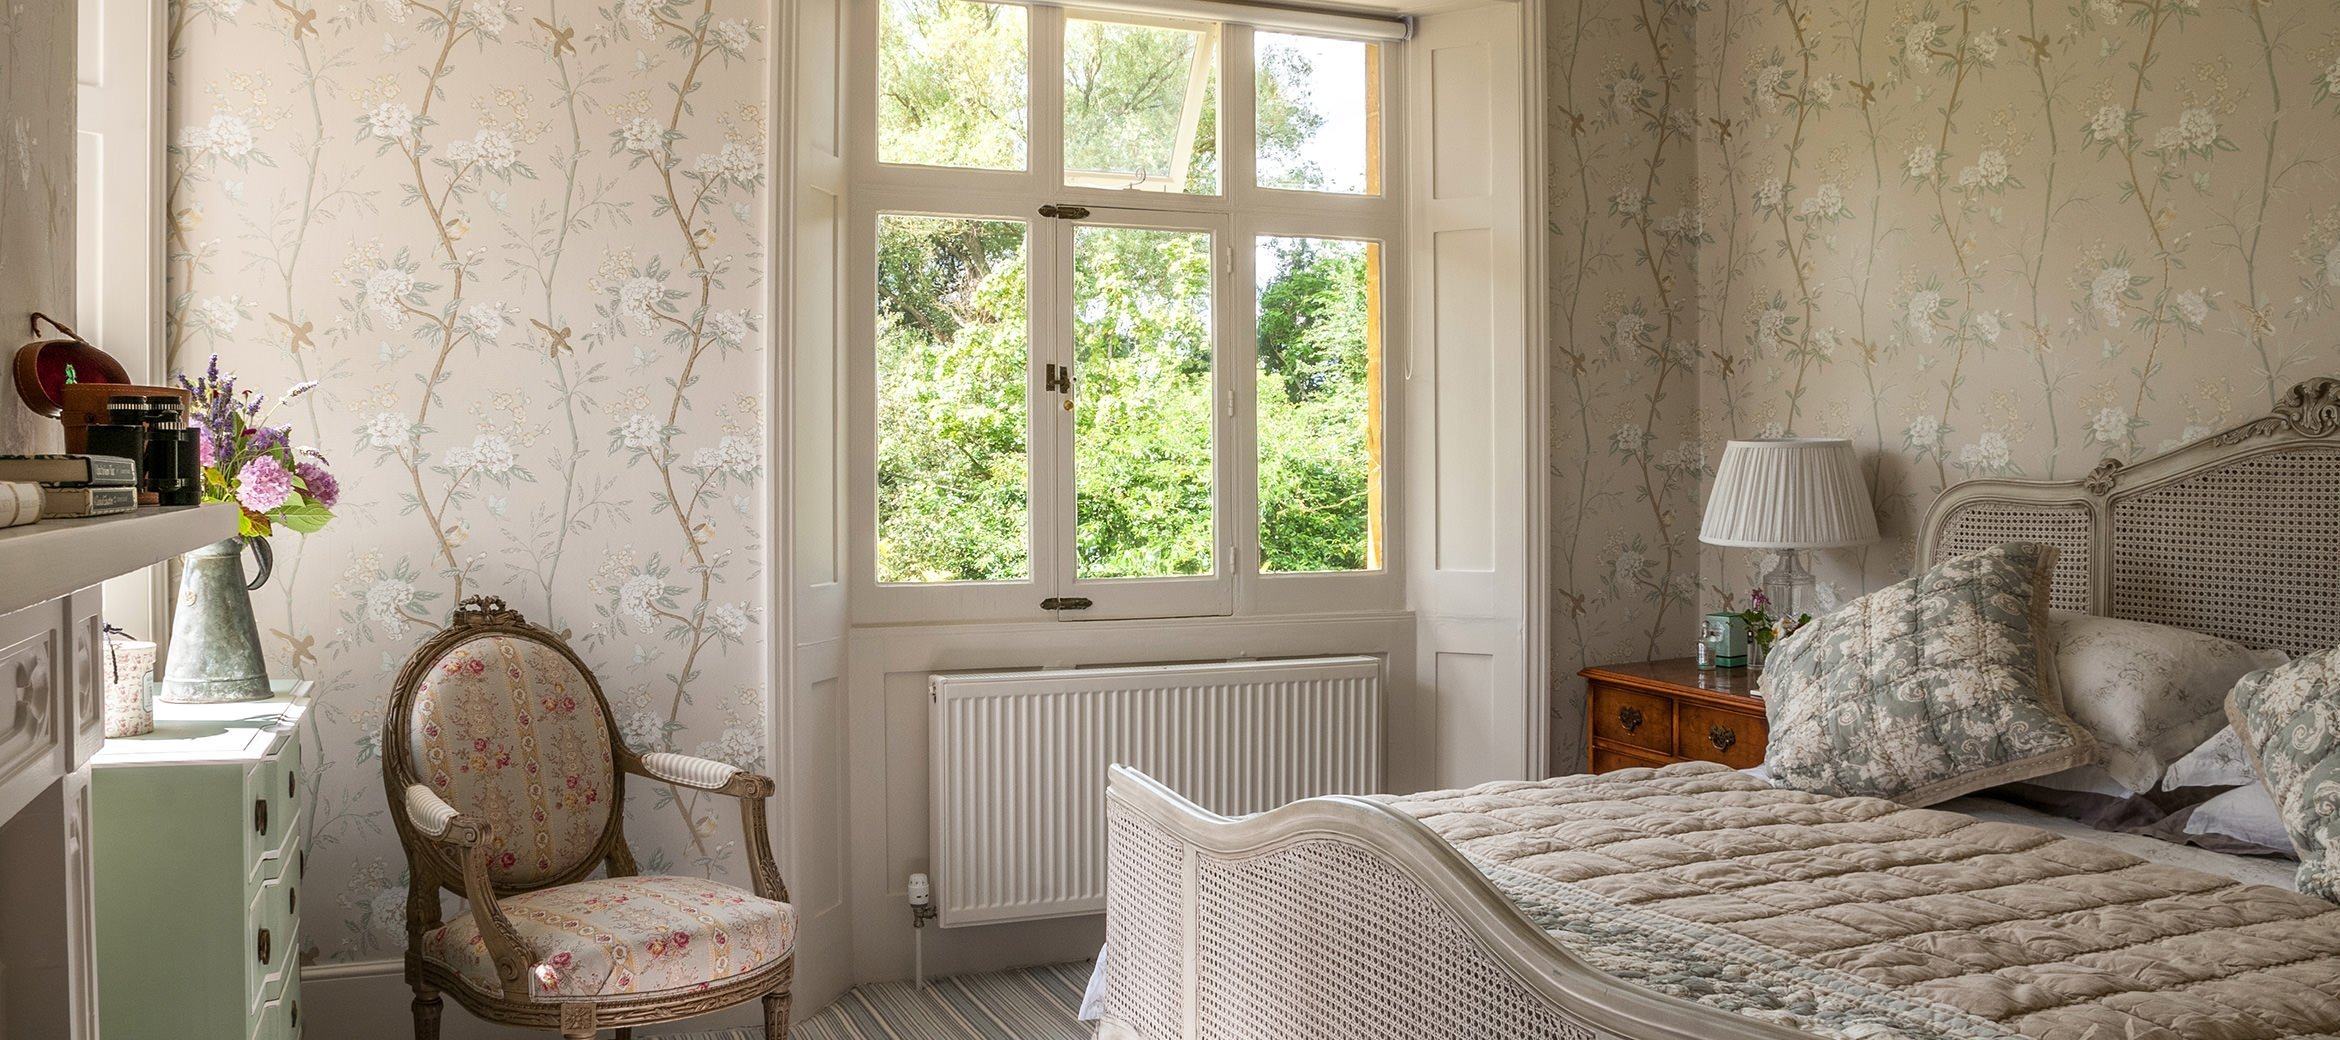 old-rectory-broadway-master-bedroom-view